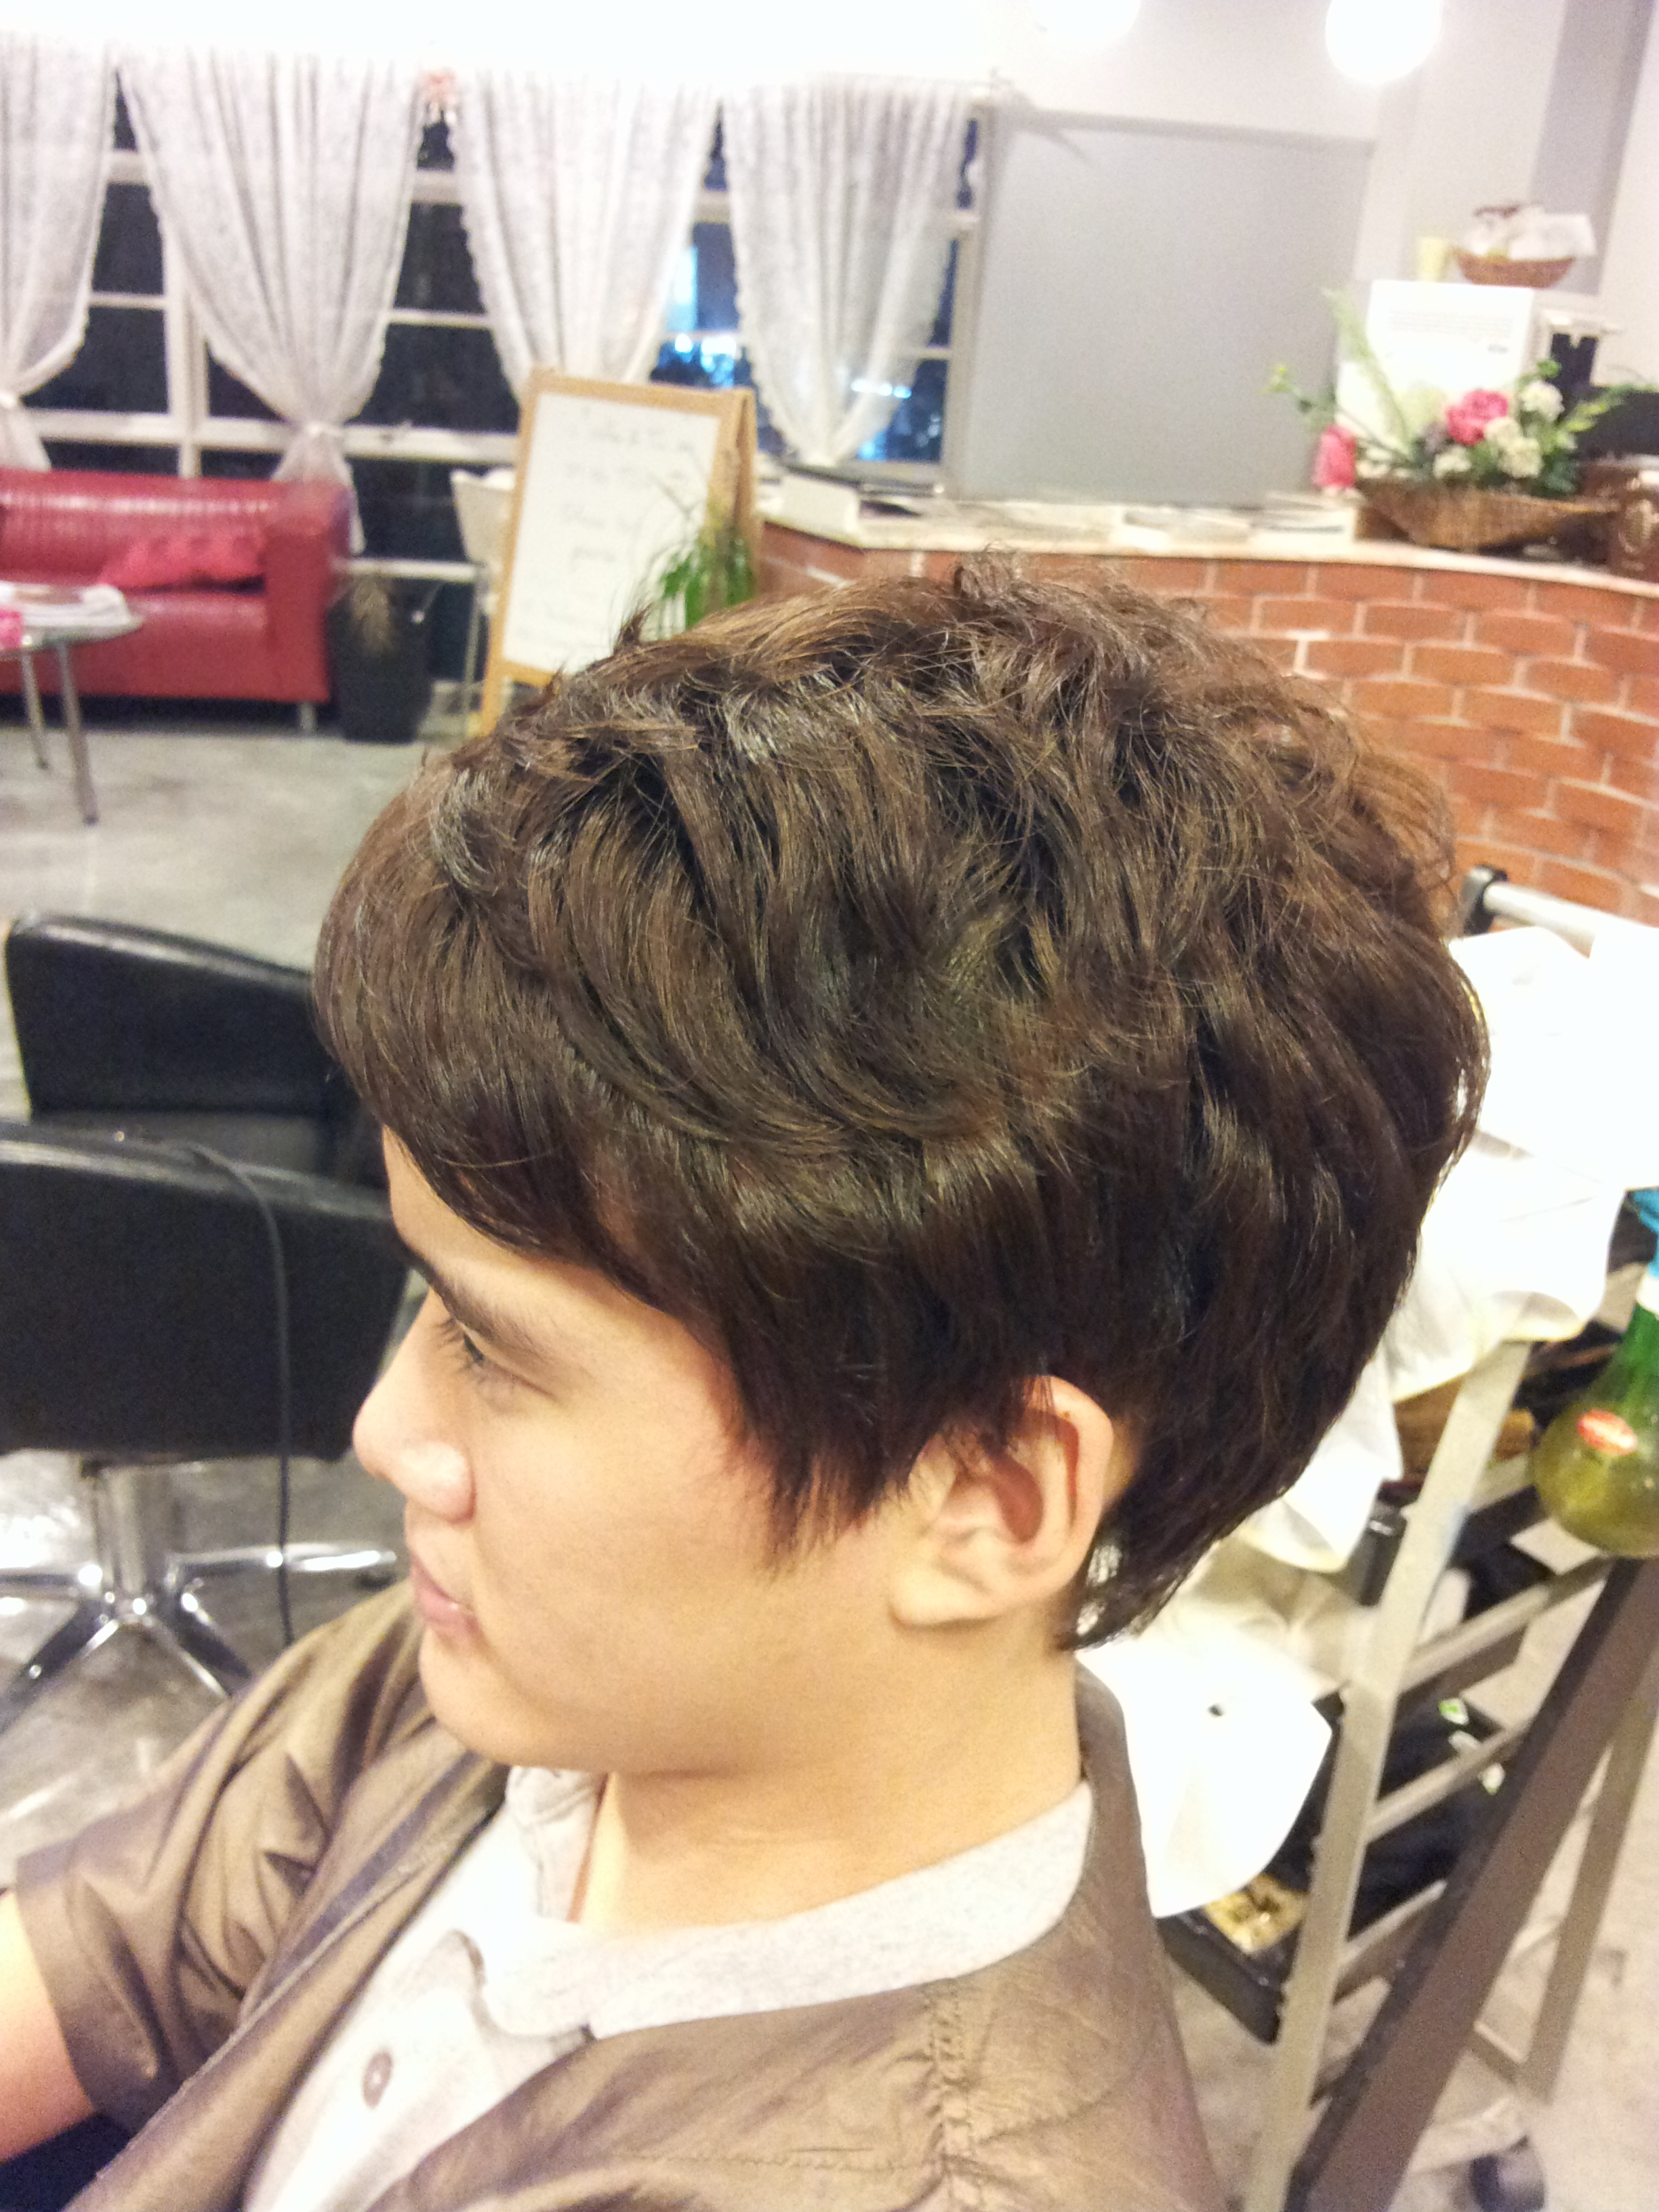 Hair Salon Perm : Man Perm Salon HAIRSTYLE GALLERY